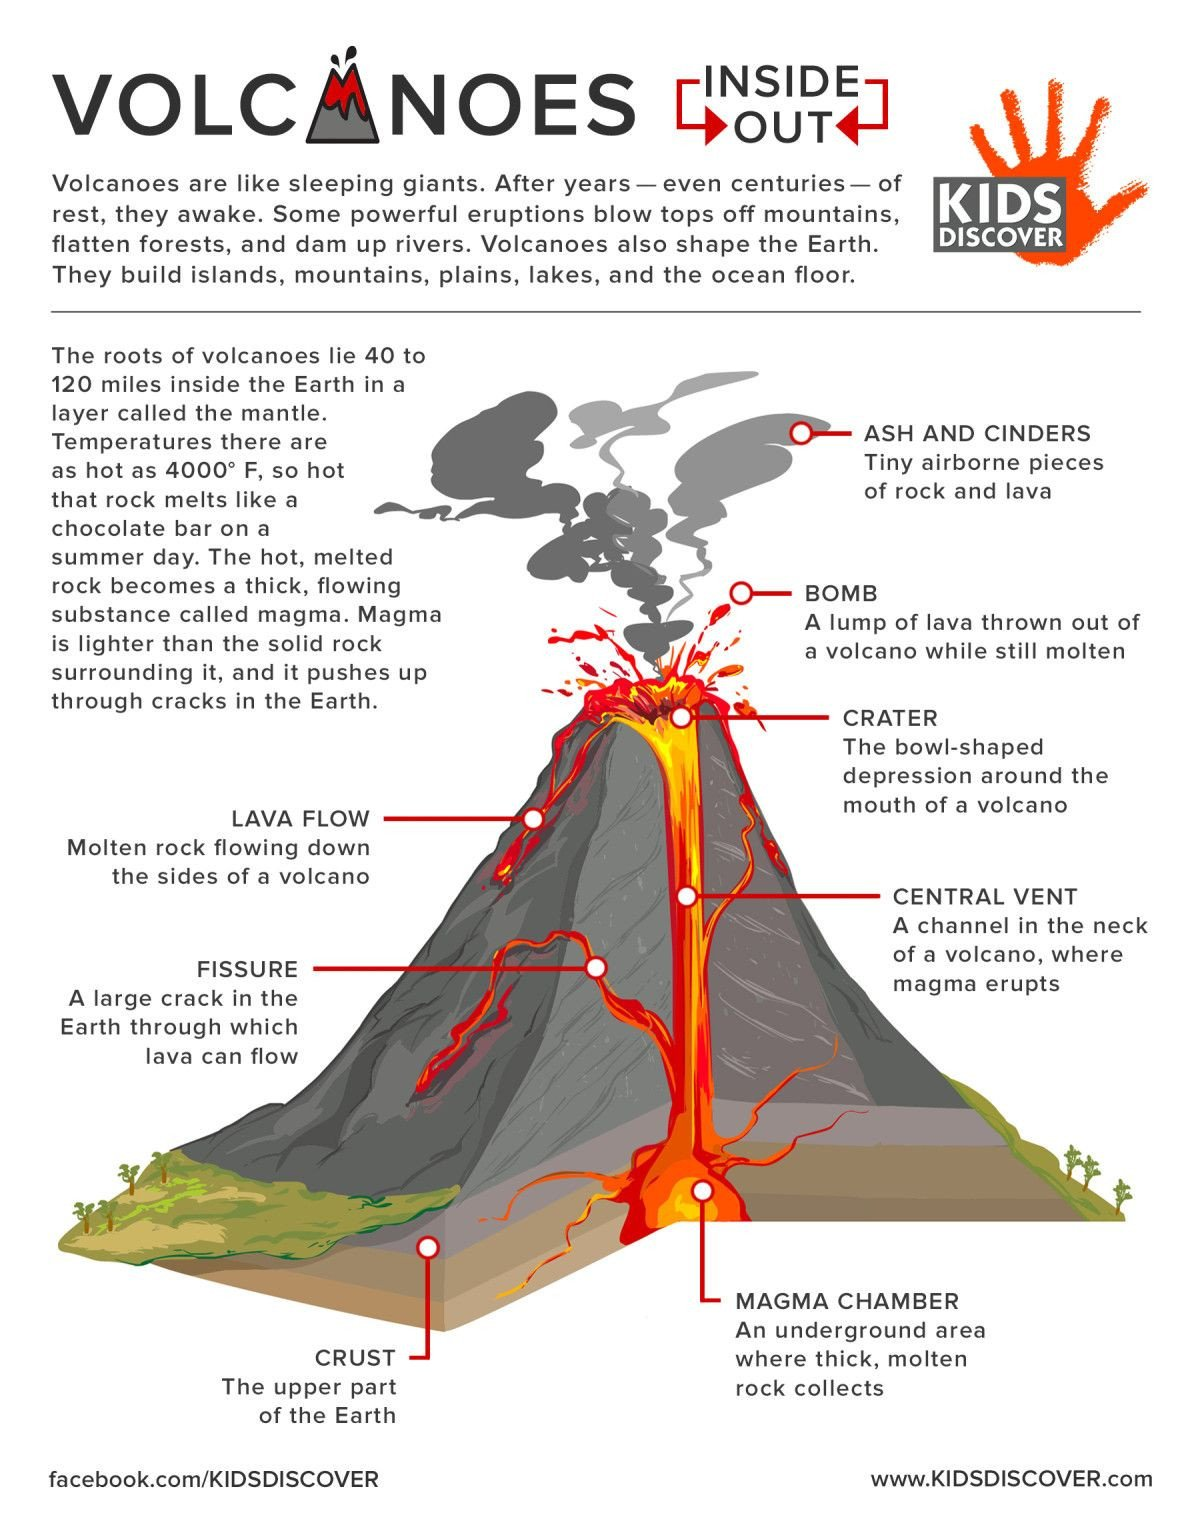 Volcano Diagram Worksheets Infographic Volcanoes Inside Out Kids Discover